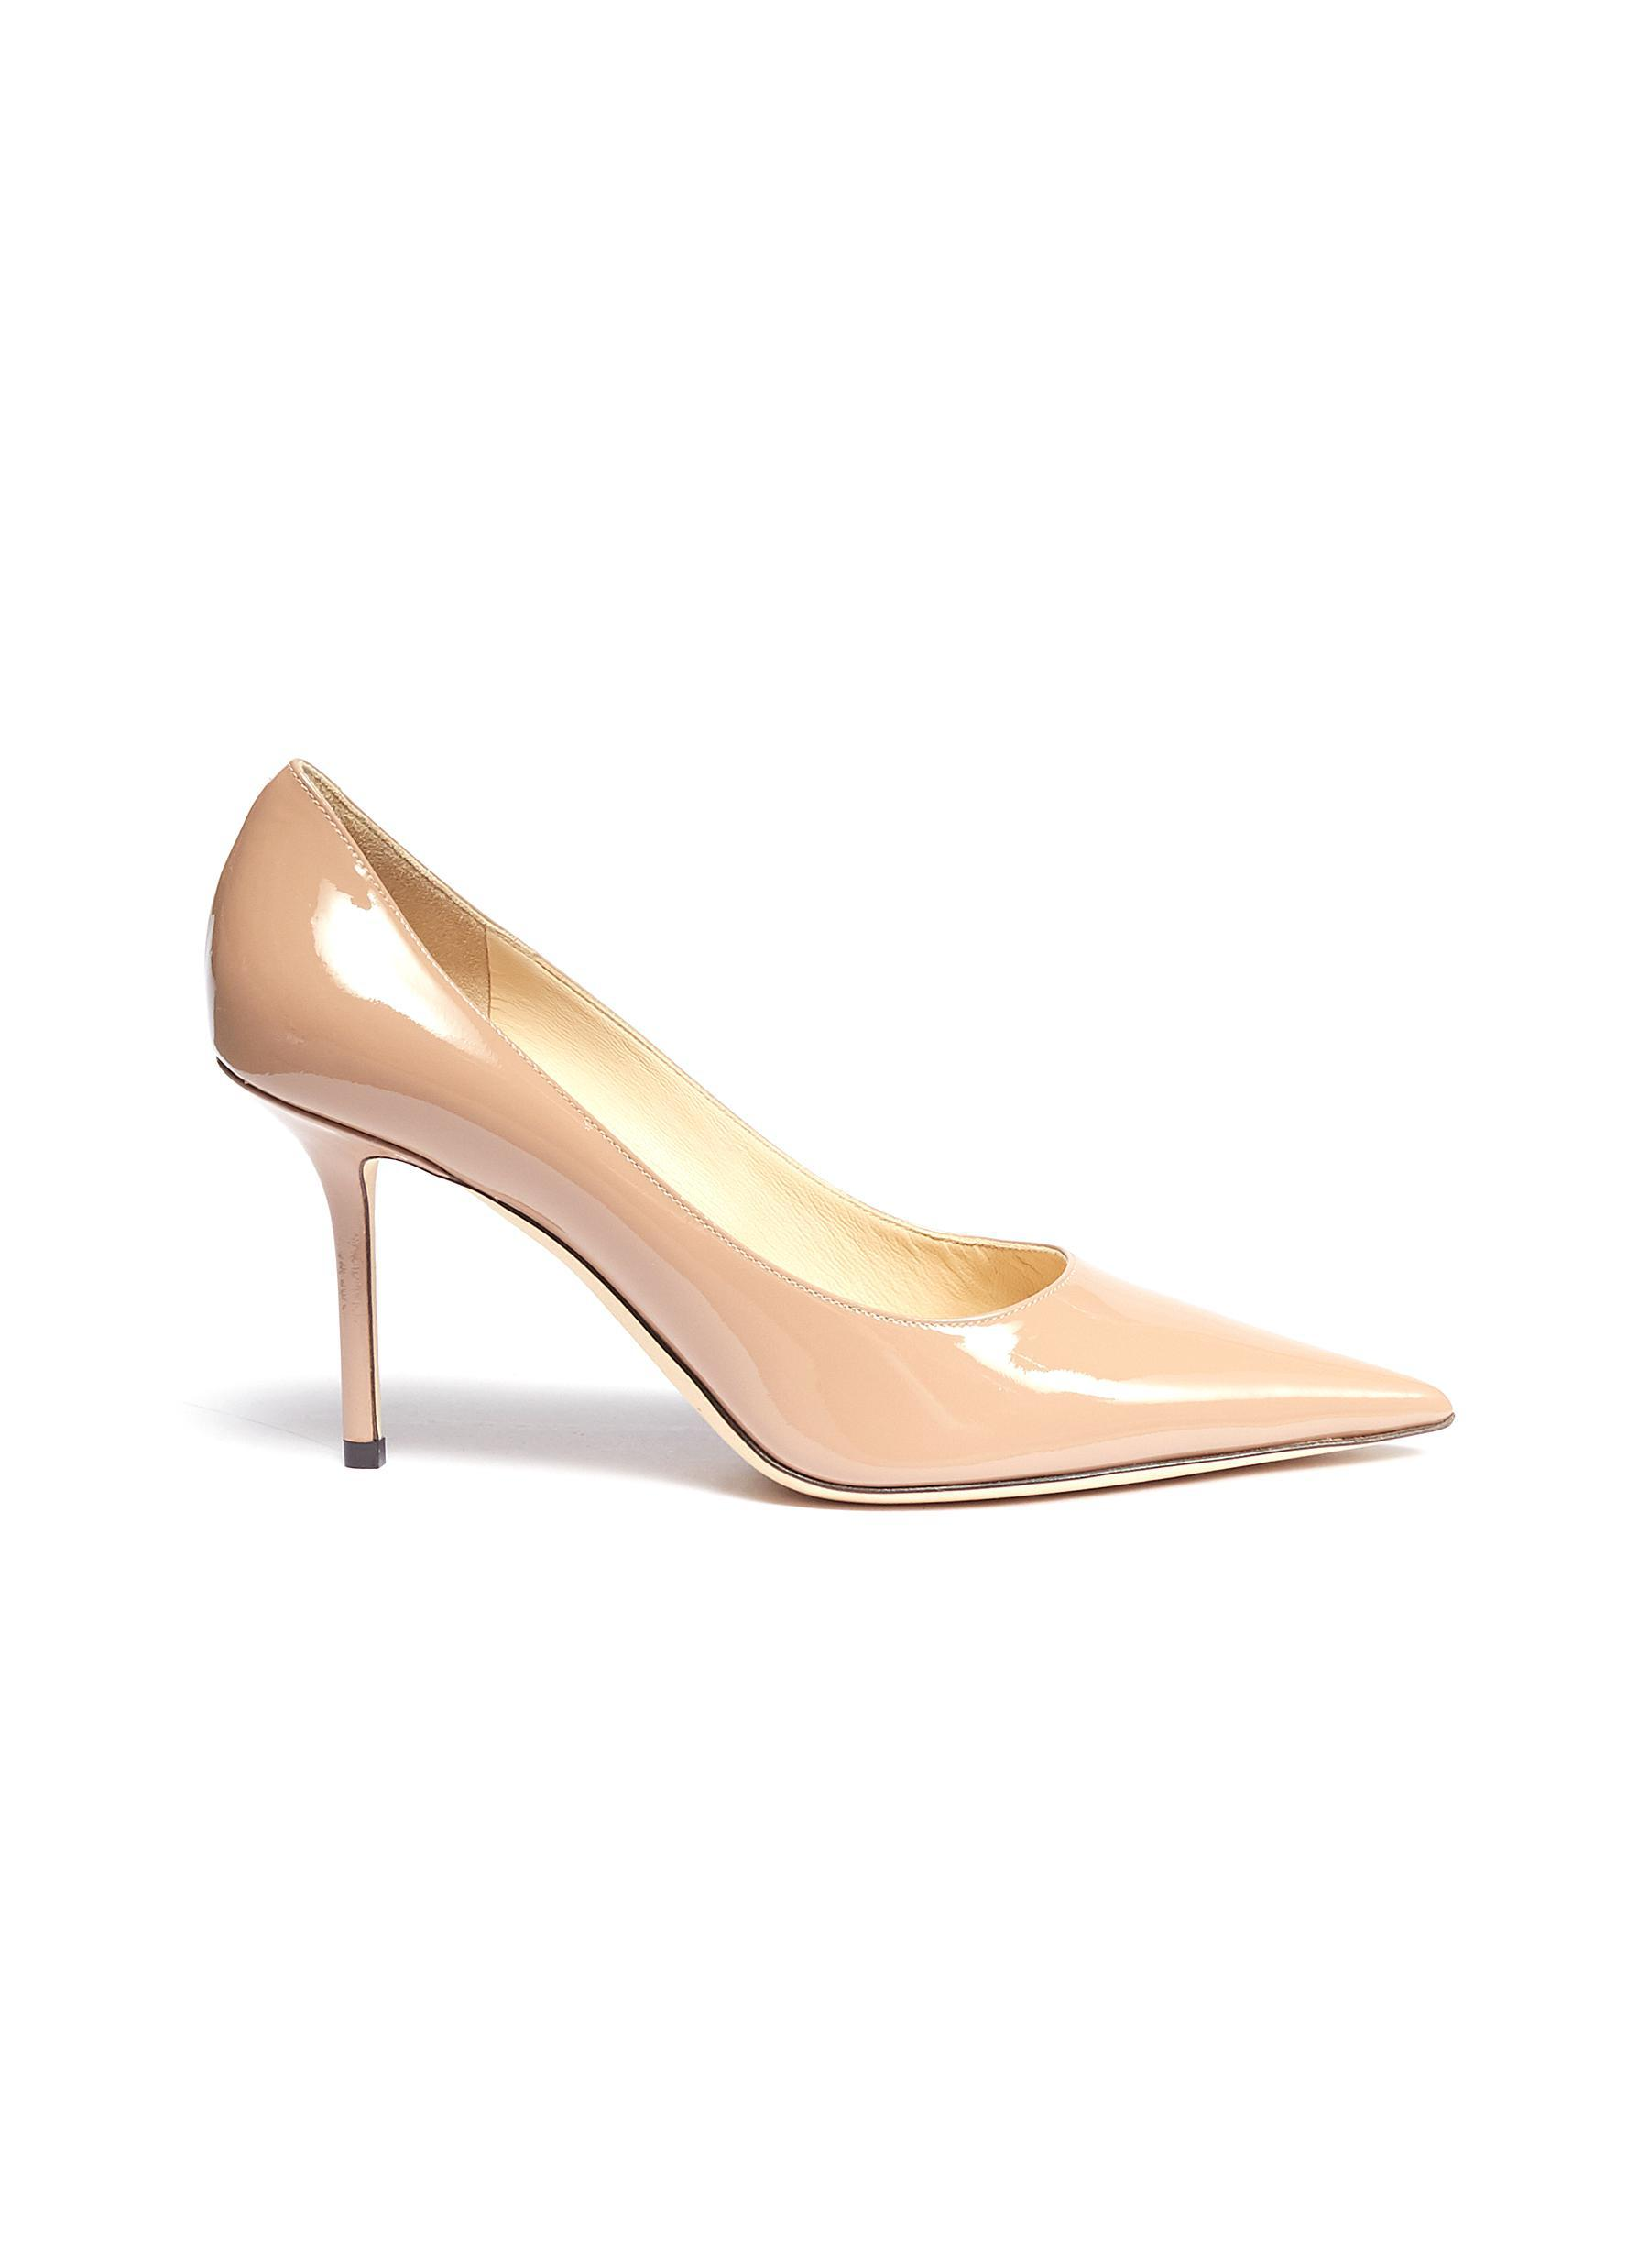 921b6de1d28f Lyst - Jimmy Choo  love 85  Patent Leather Pumps in Pink